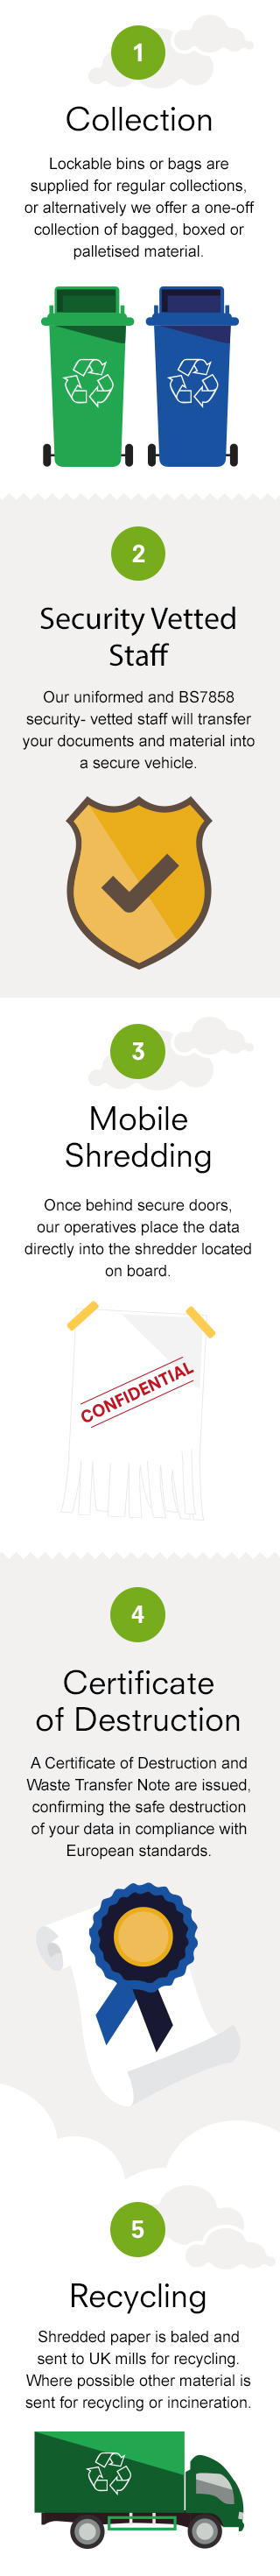 Mobile Shredding Infographic - small version